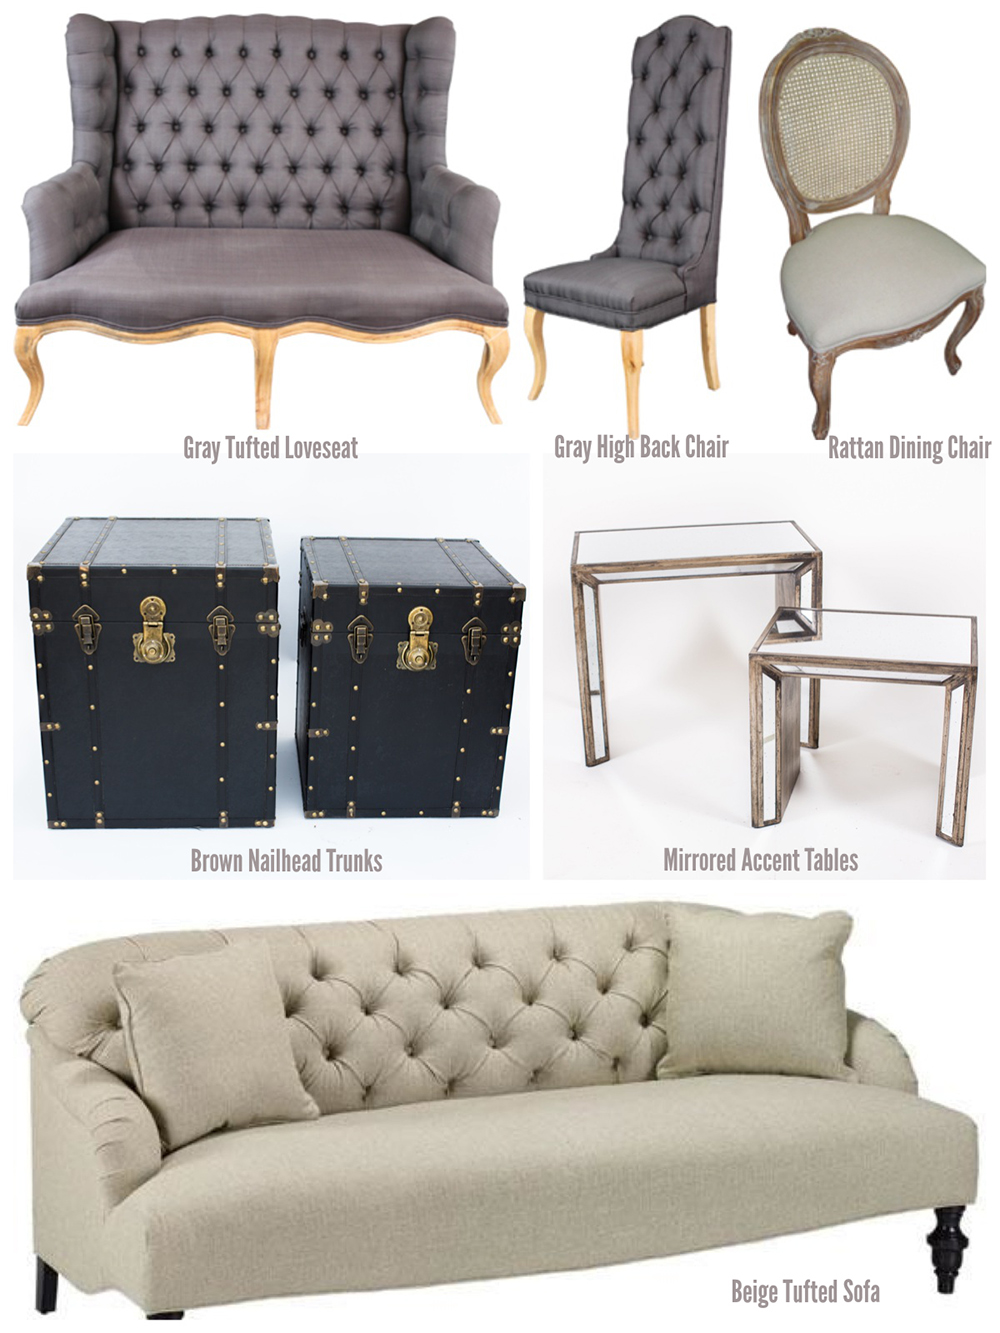 Rent Vintage Lounge Furniture in Wine Country